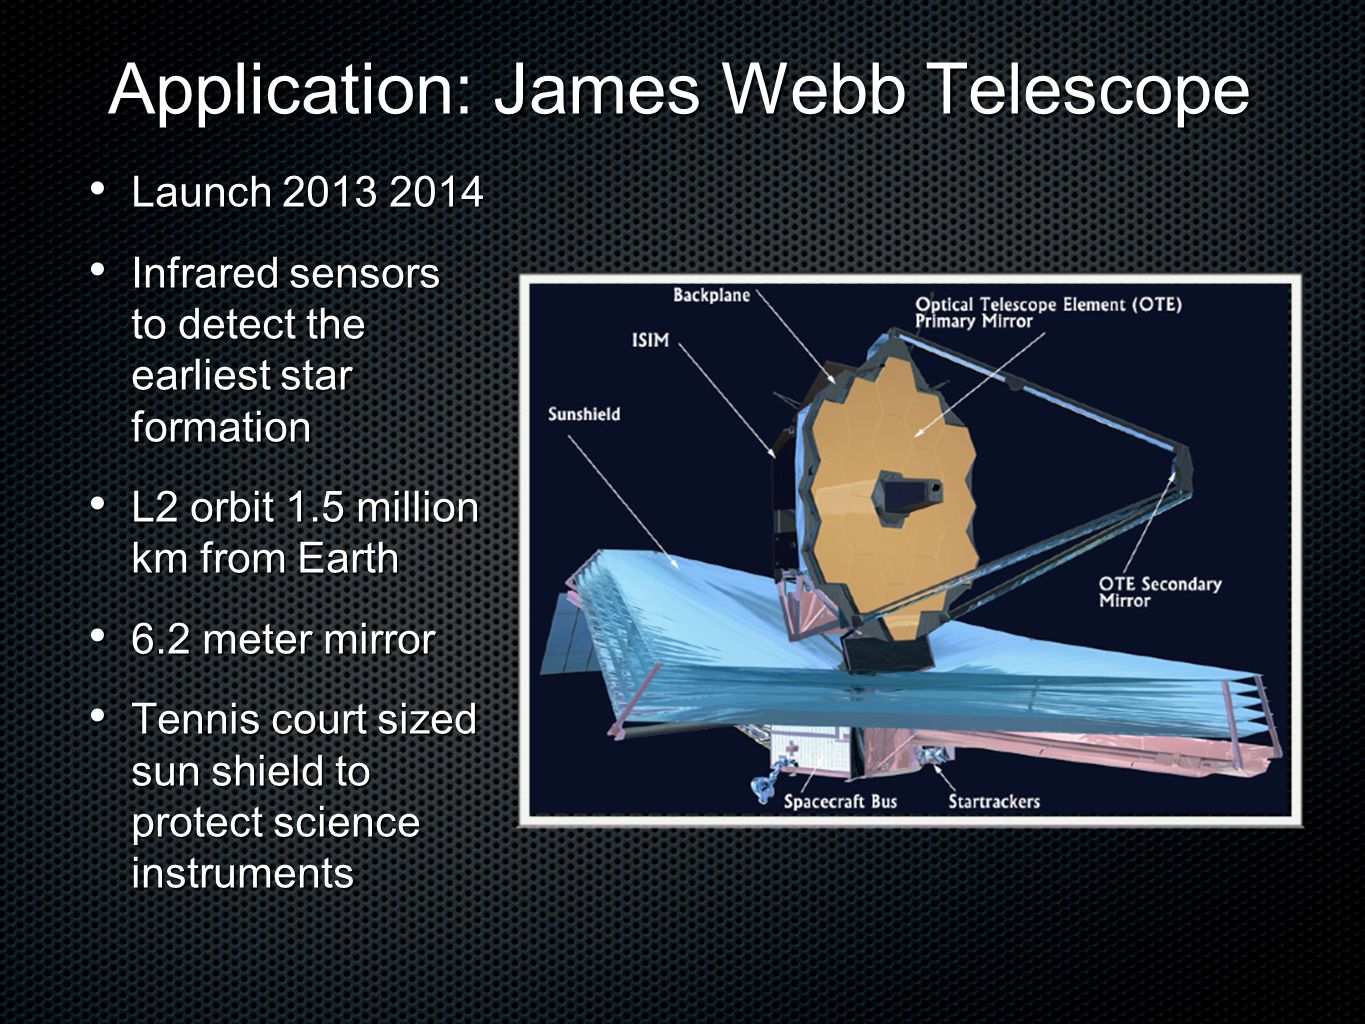 Application: James Webb Telescope Application: James Webb Telescope Launch 2013 2014 Launch 2013 2014 Infrared sensors to detect the earliest star formation Infrared sensors to detect the earliest star formation L2 orbit 1.5 million km from Earth L2 orbit 1.5 million km from Earth 6.2 meter mirror 6.2 meter mirror Tennis court sized sun shield to protect science instruments Tennis court sized sun shield to protect science instruments